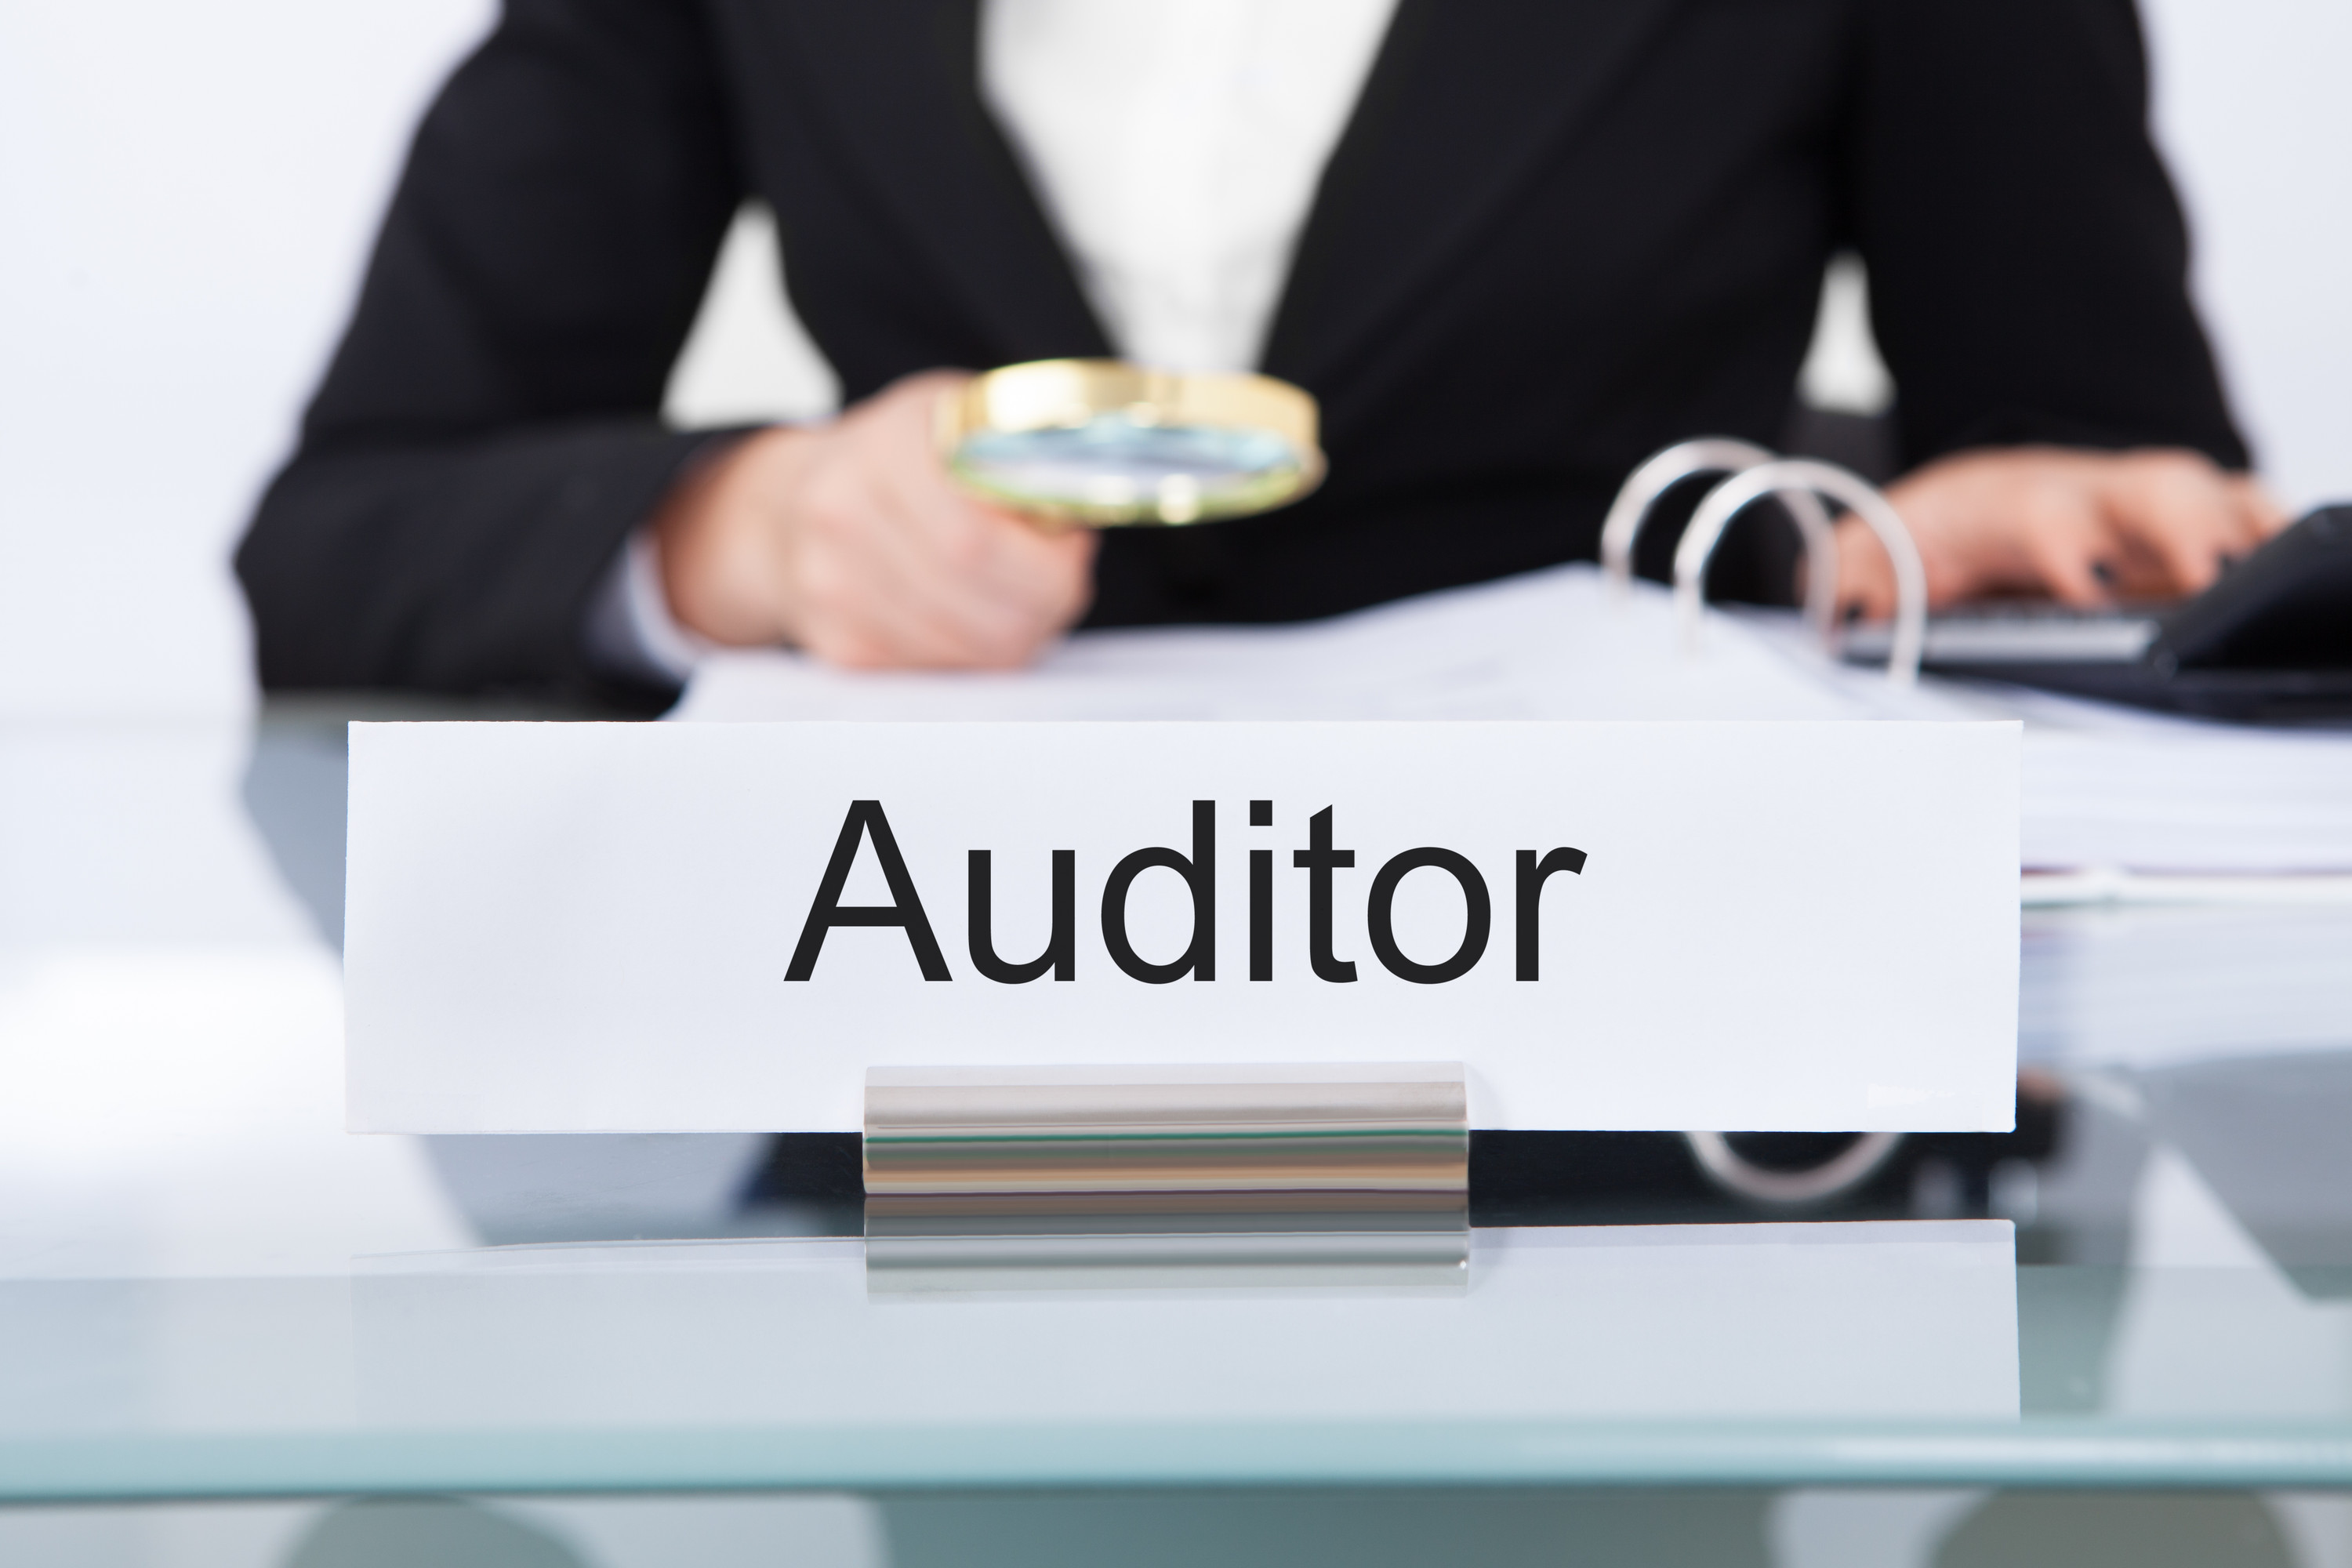 THE NEW CONCEPT OF INTERNAL AUDITOR